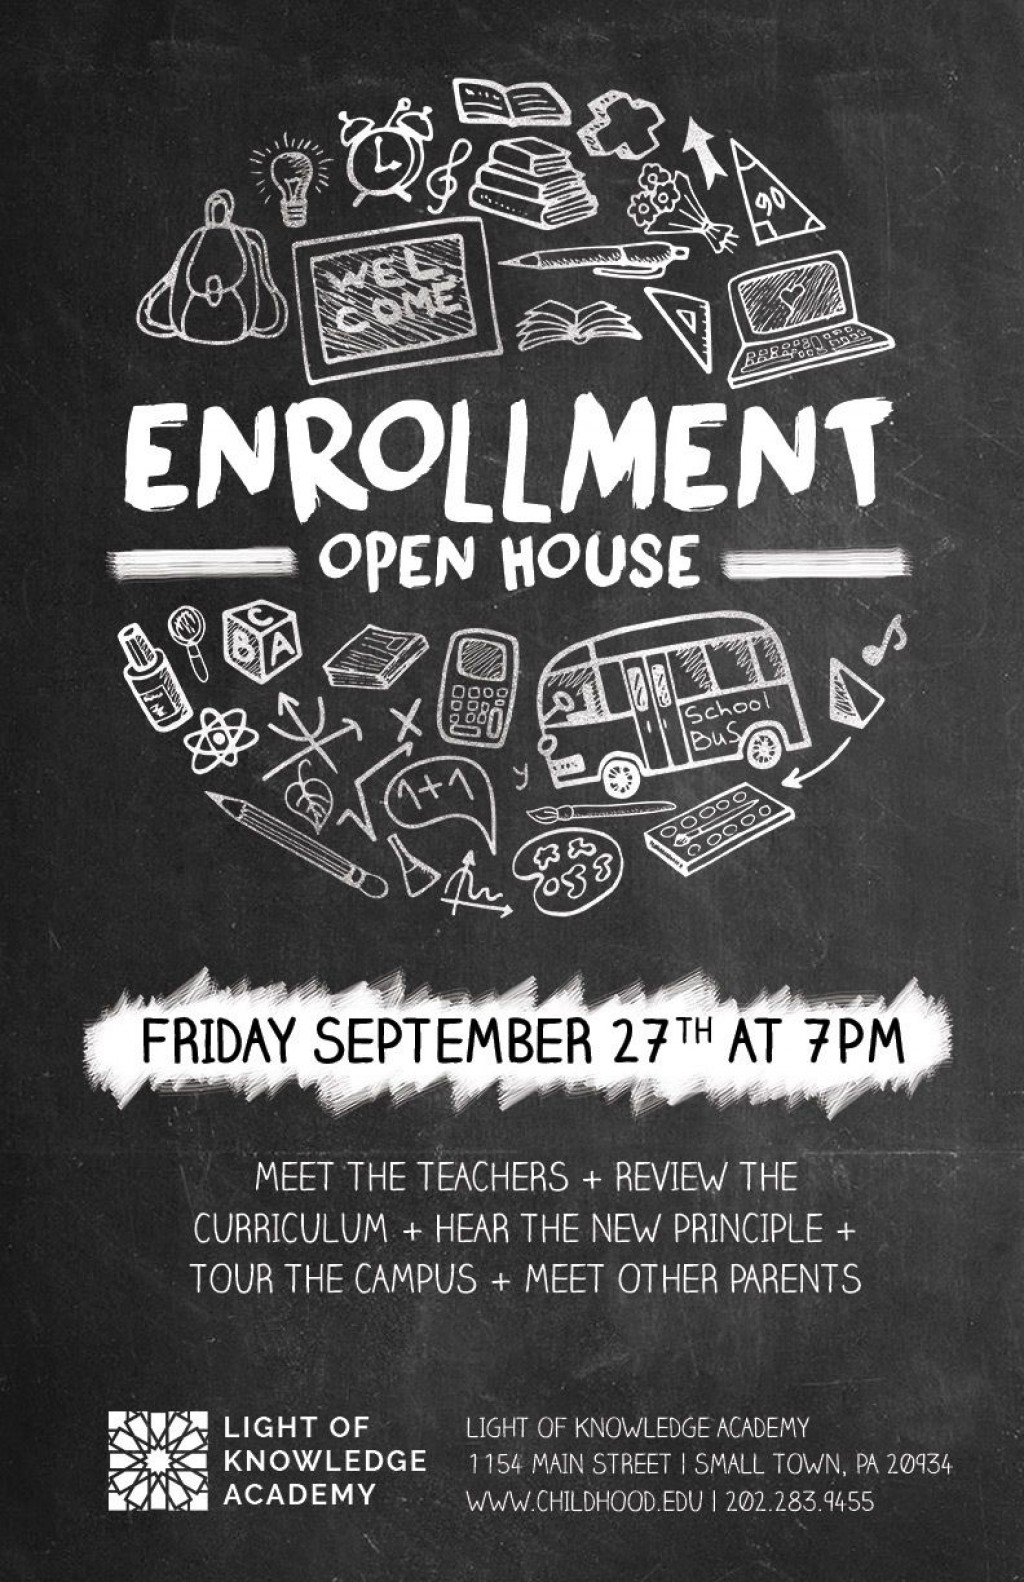 008 Staggering Open House Flyer Template High Definition  Templates Free School MicrosoftLarge